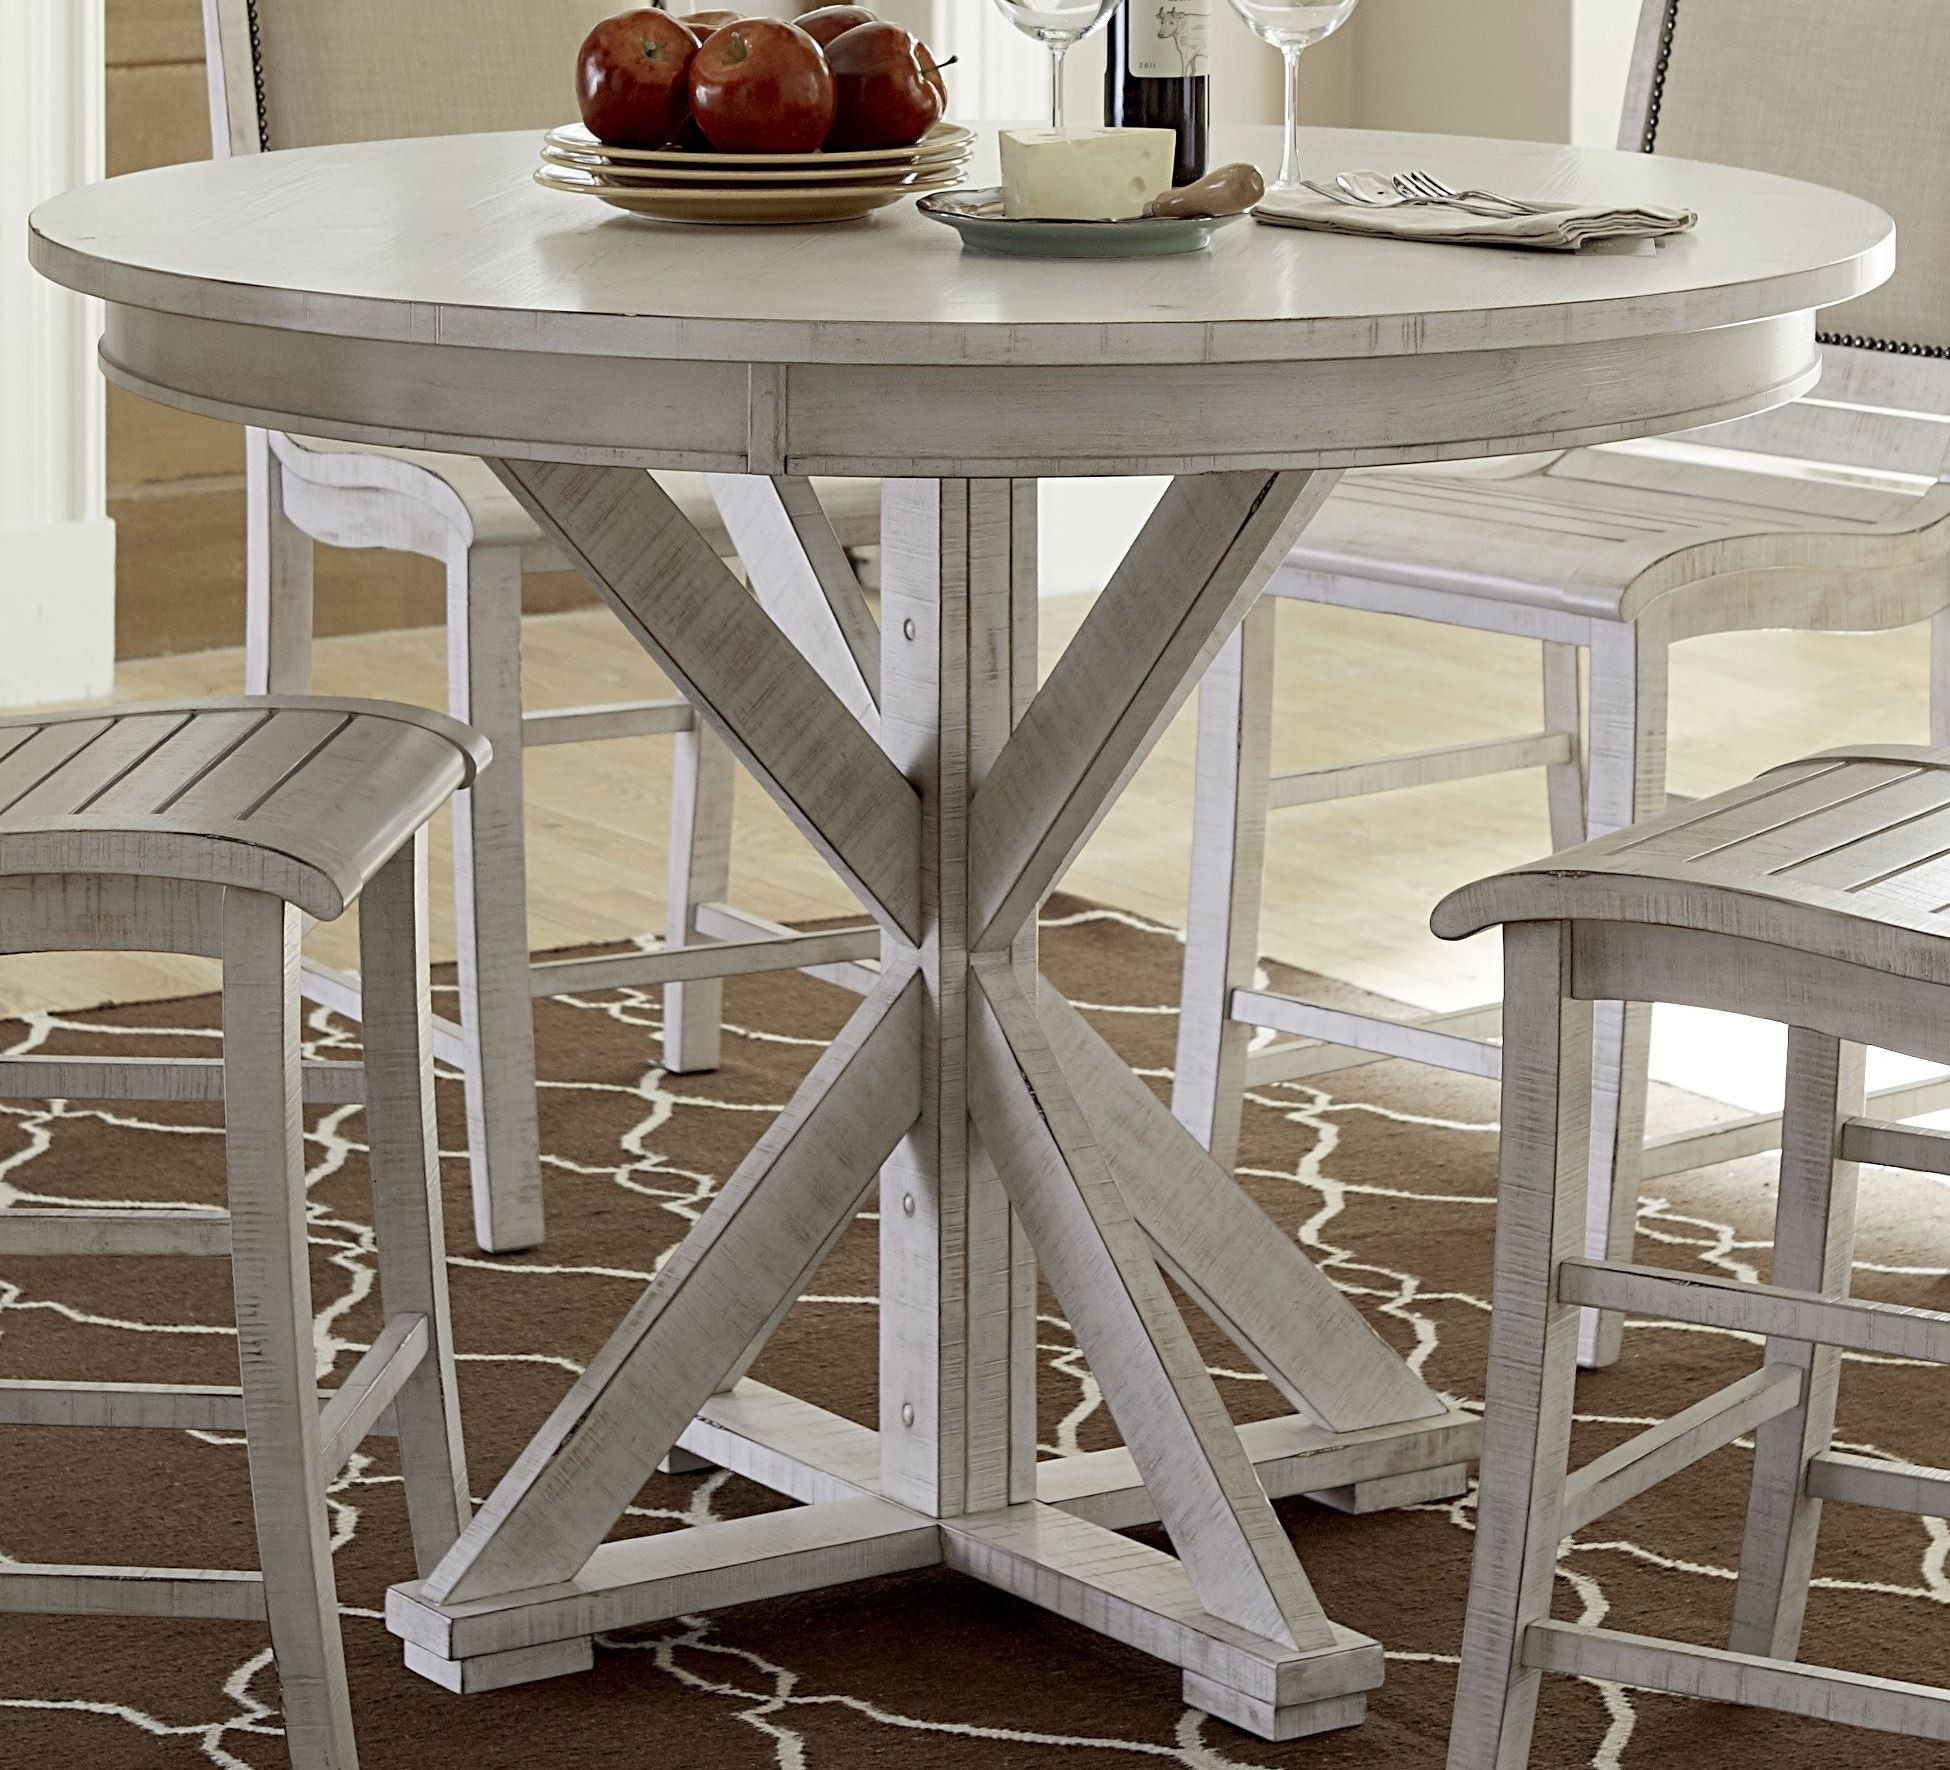 willow distressed white round counter height dining table from progressive furniture coleman. Black Bedroom Furniture Sets. Home Design Ideas